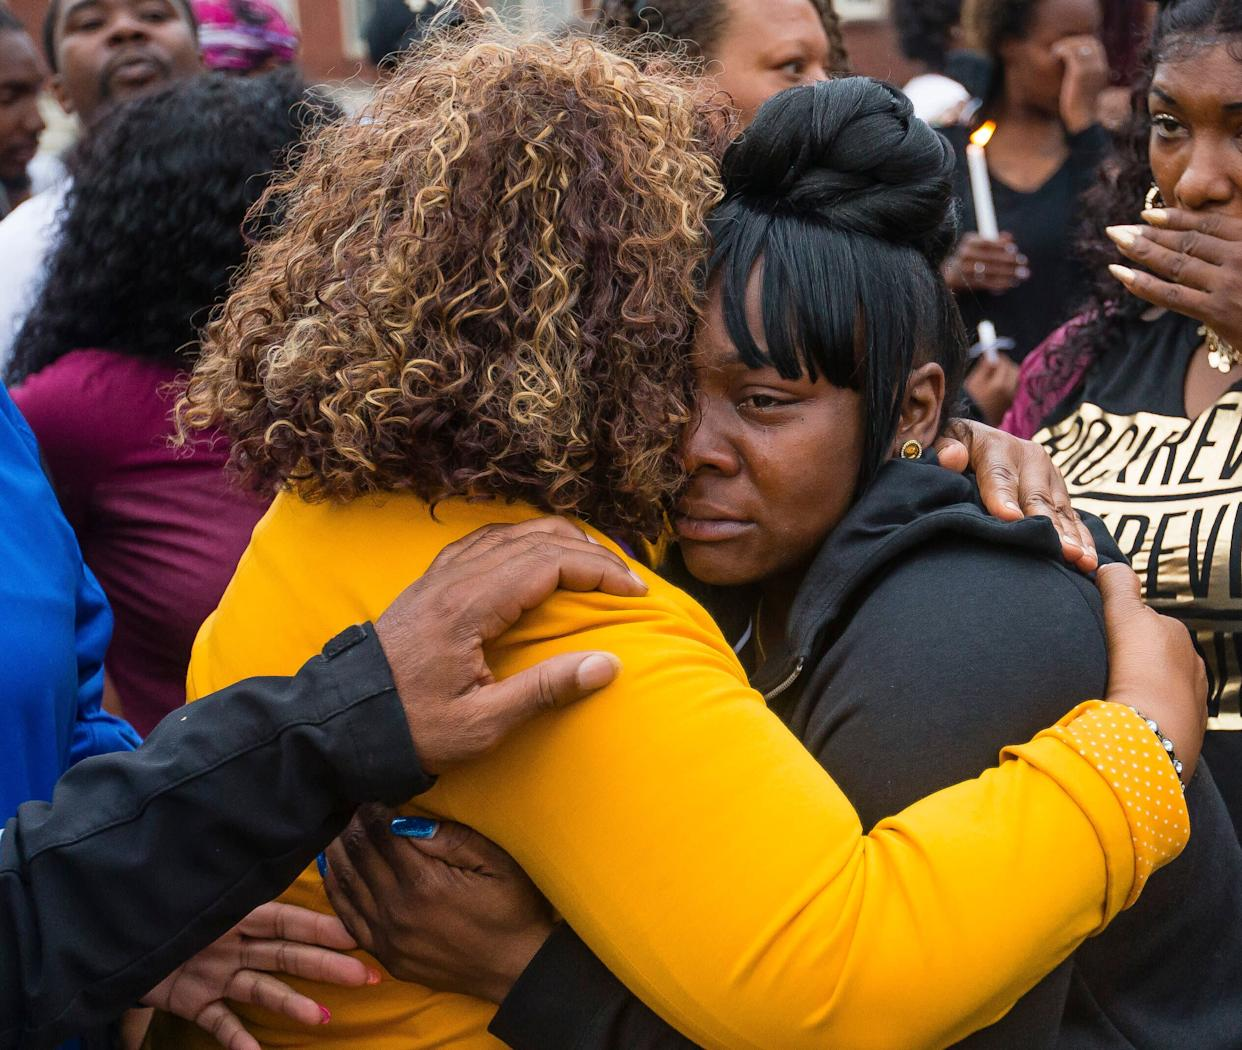 Family members embrace one another during a vigil for Eric Logan Monday, June 17, 2019, on Washington Street in South Bend, Ind. (Photo: ASSOCIATED PRESS)